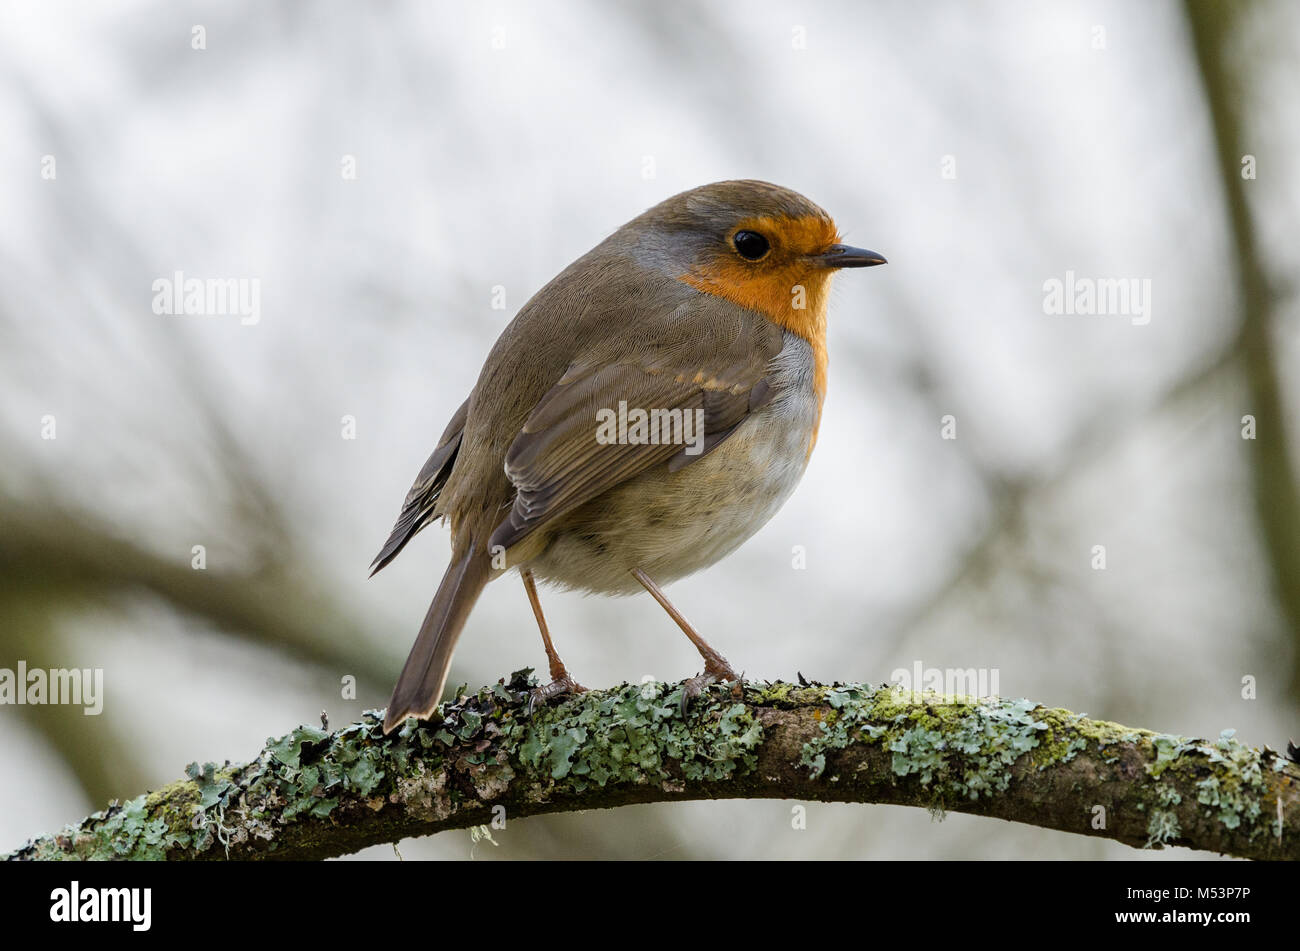 western palearctic - Stock Image